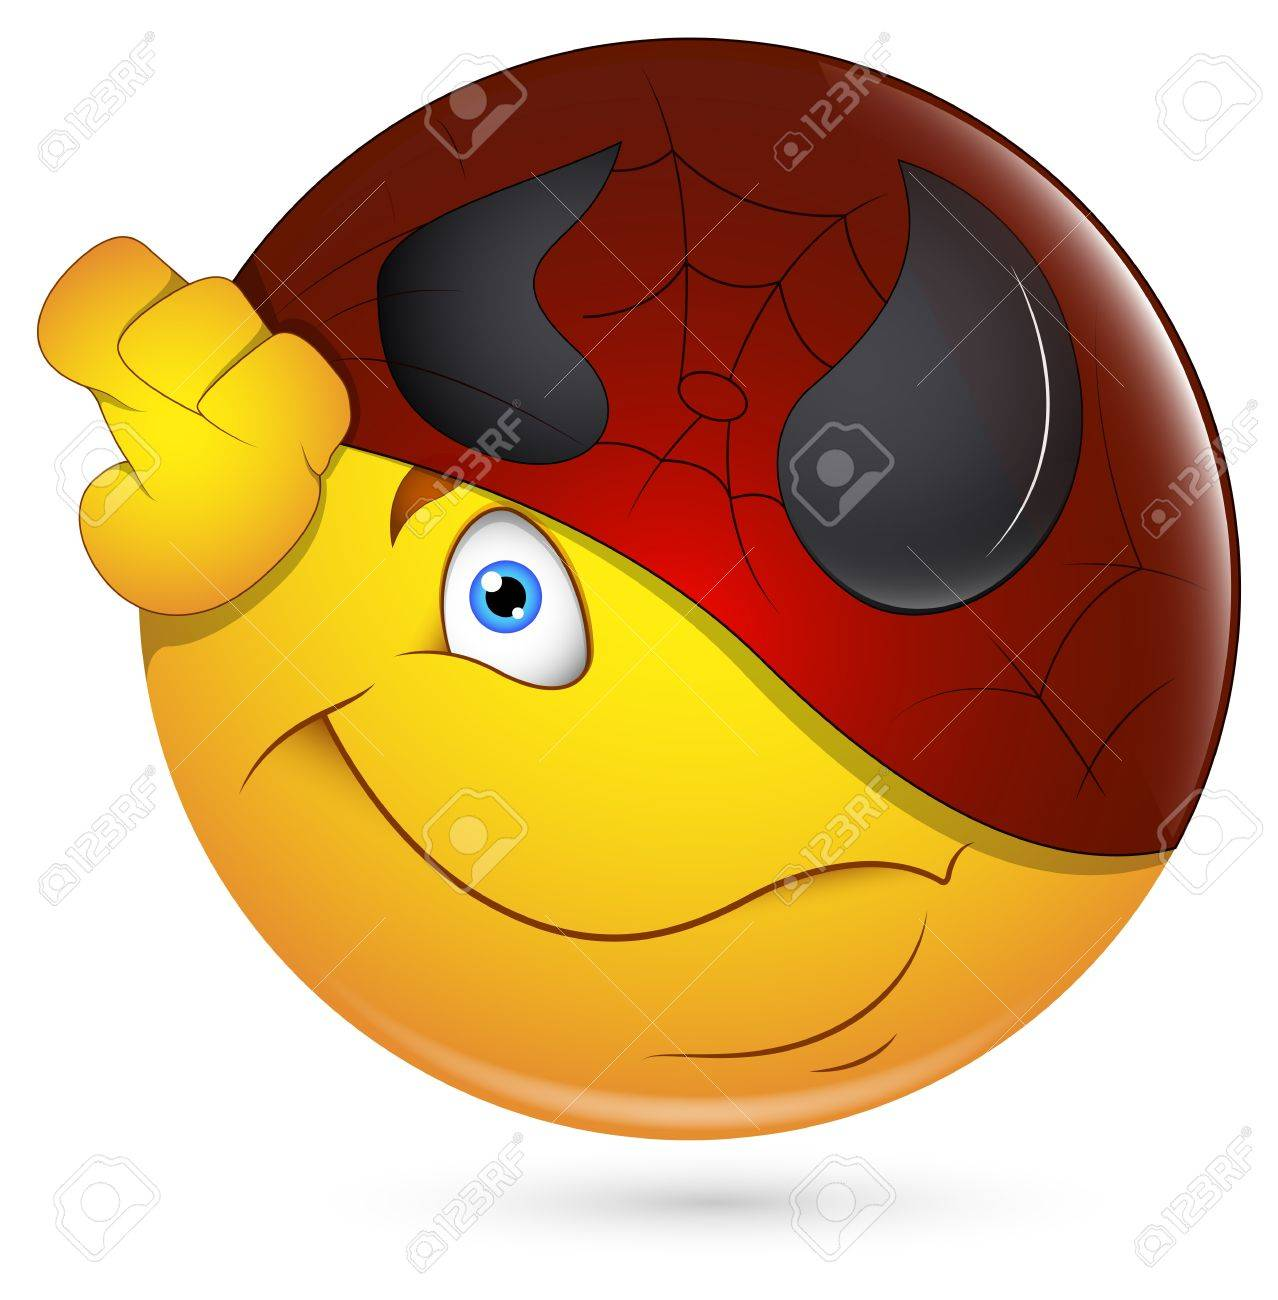 Smiley Vector Illustration - Being Super Hero Face Stock Vector - 18243429